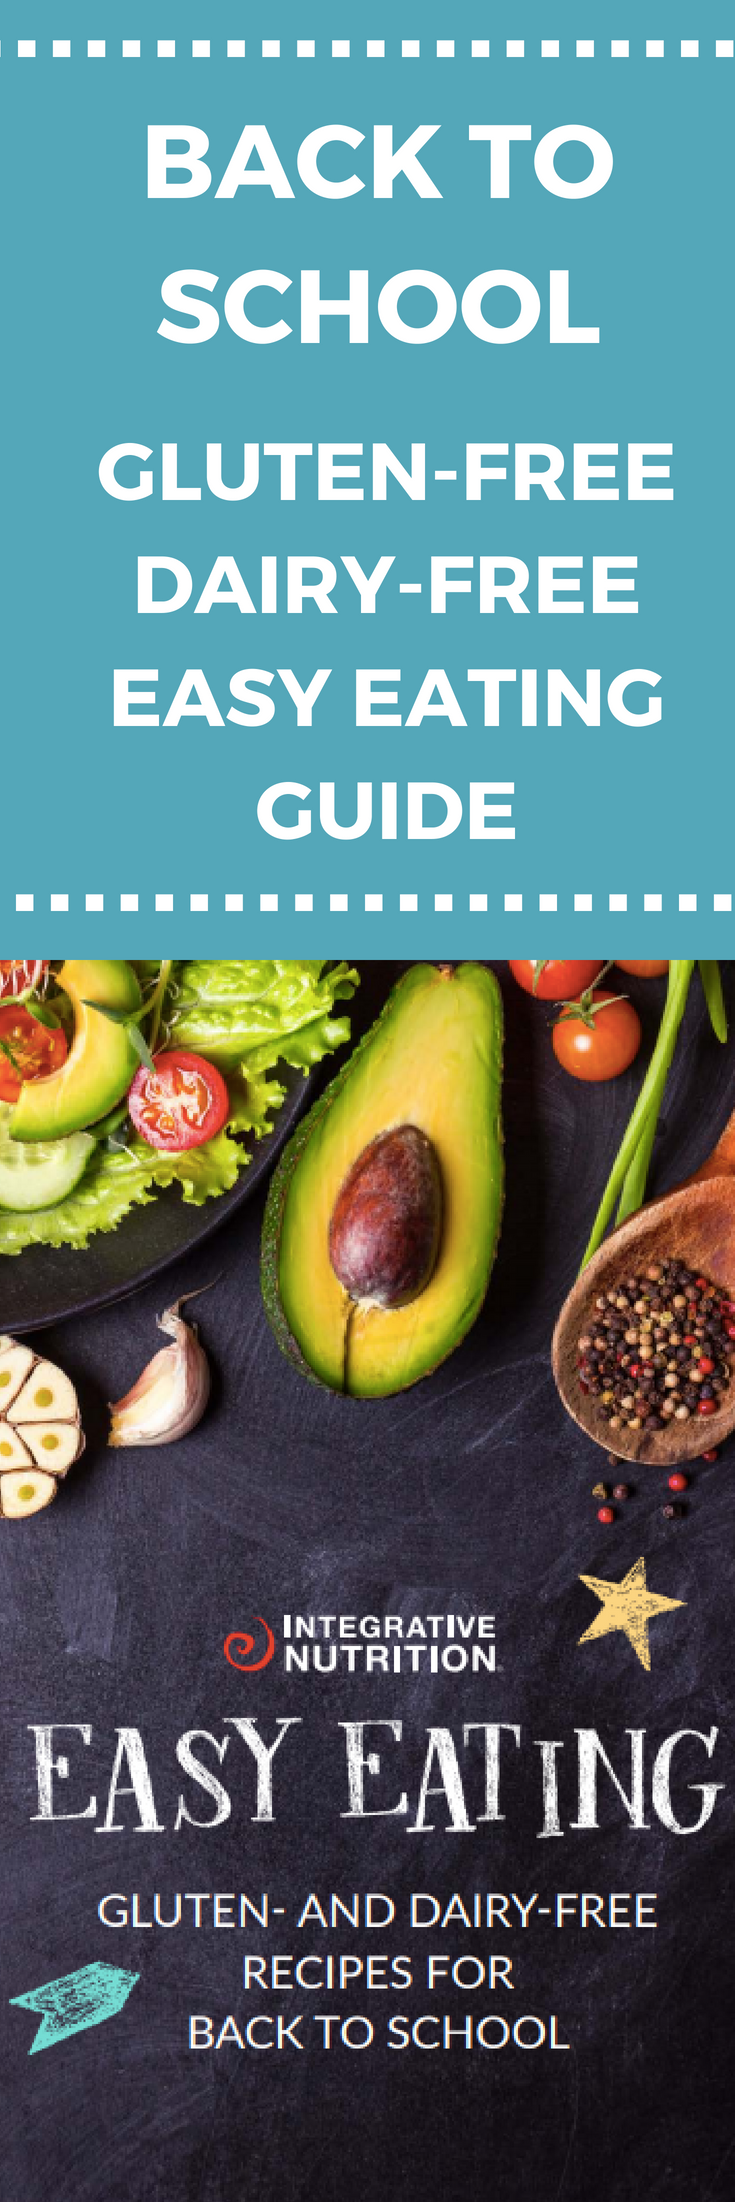 Get gluten-free dairy-free tips and recipes for back to school season with the Back to School Easy Eating Guide. Click through for instant access!